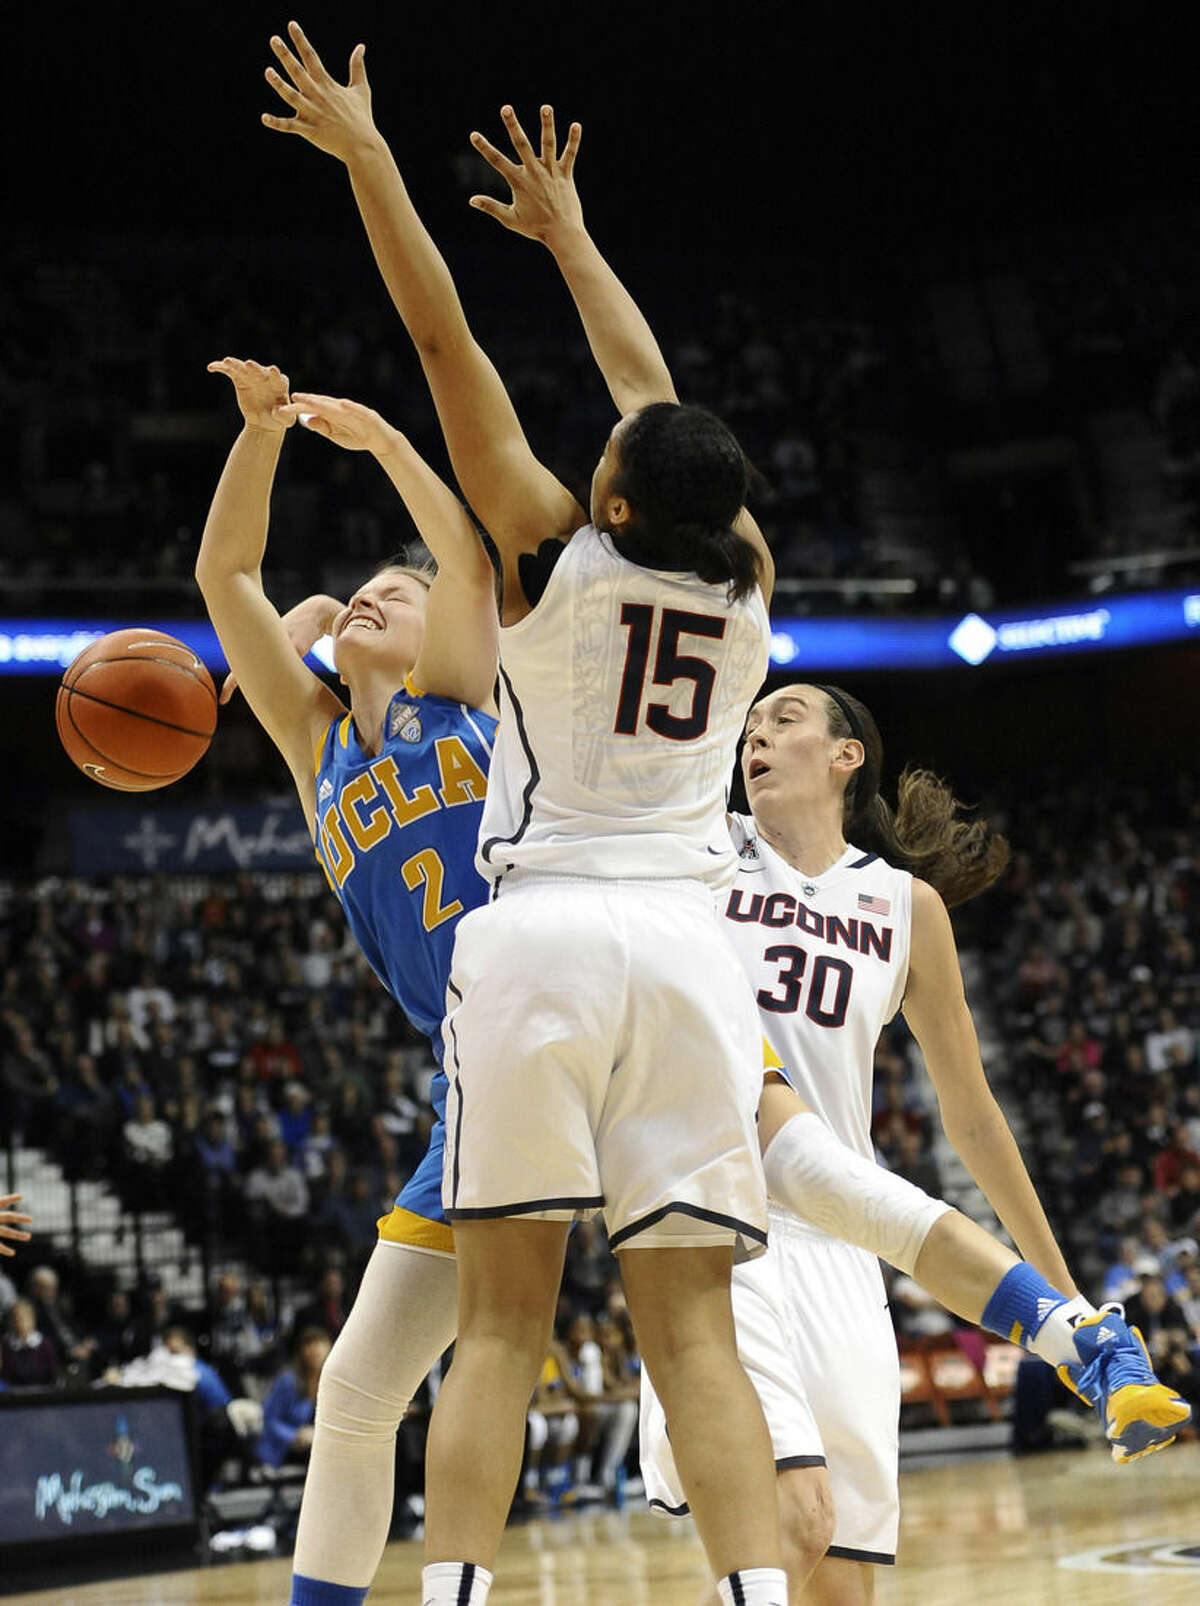 Connecticut's Breanna Stewart, back right, and Gabby Williams, front, force the ball from UCLA's Kari Korver during the first half of an NCAA college basketball game, Sunday, Dec. 21, 2014, in Uncasville, Conn. (AP Photo/Jessica Hill)